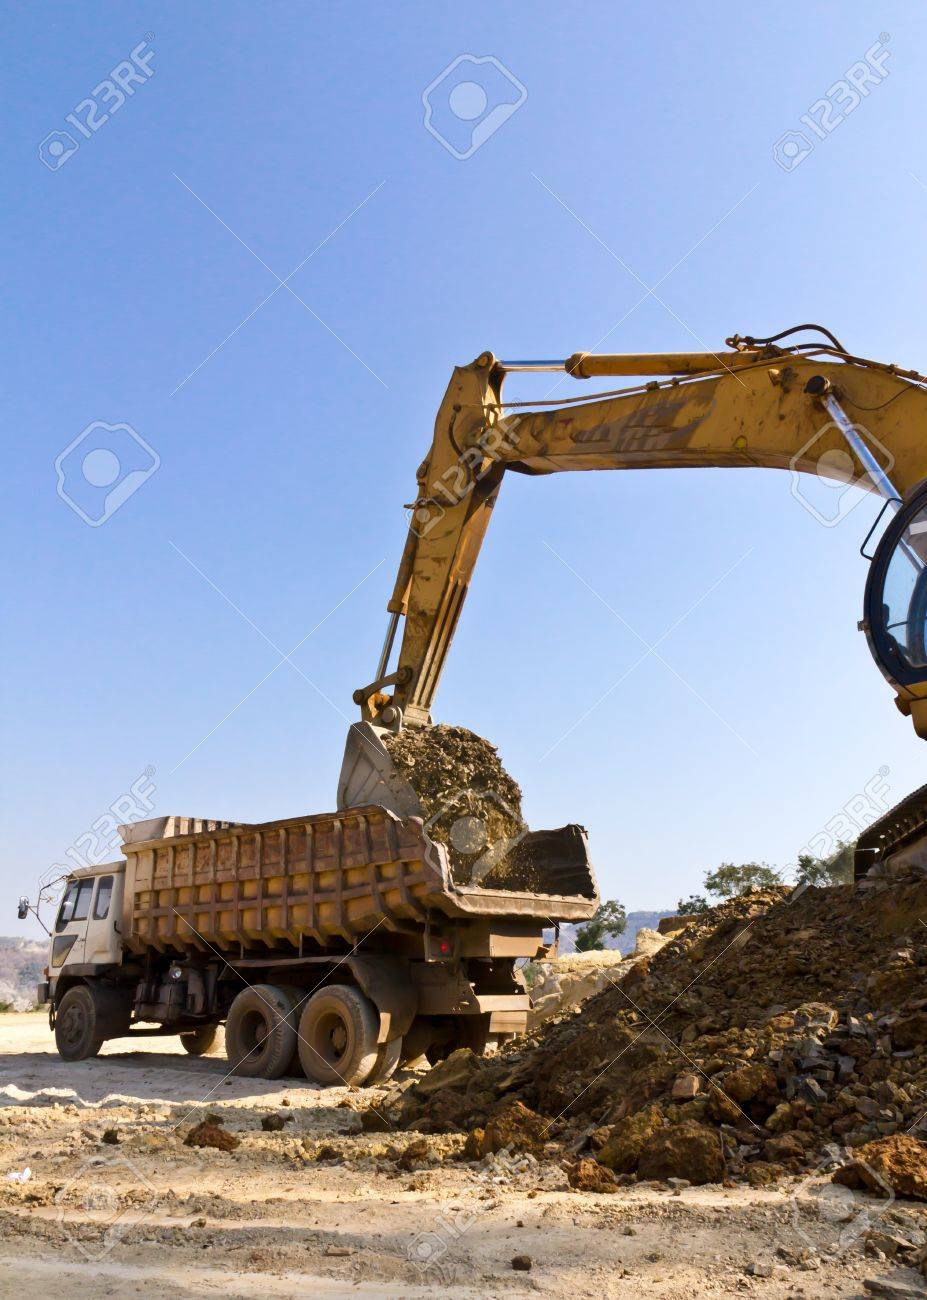 The dredge and the dumper truck work on building. Stock Photo - 12530898